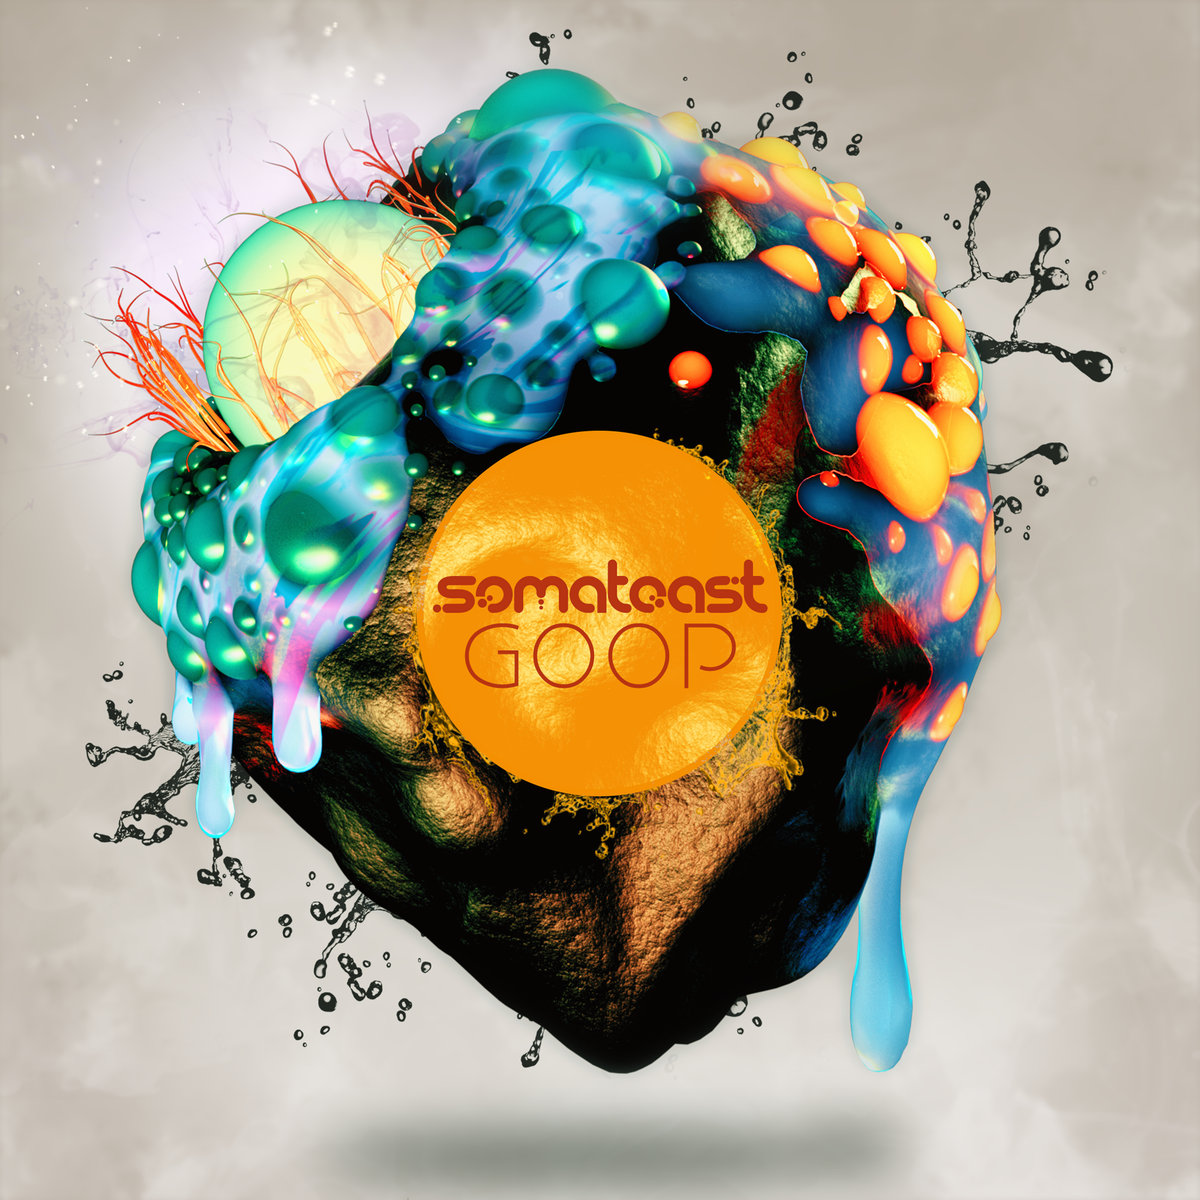 Somatoast - Goop (artwork)